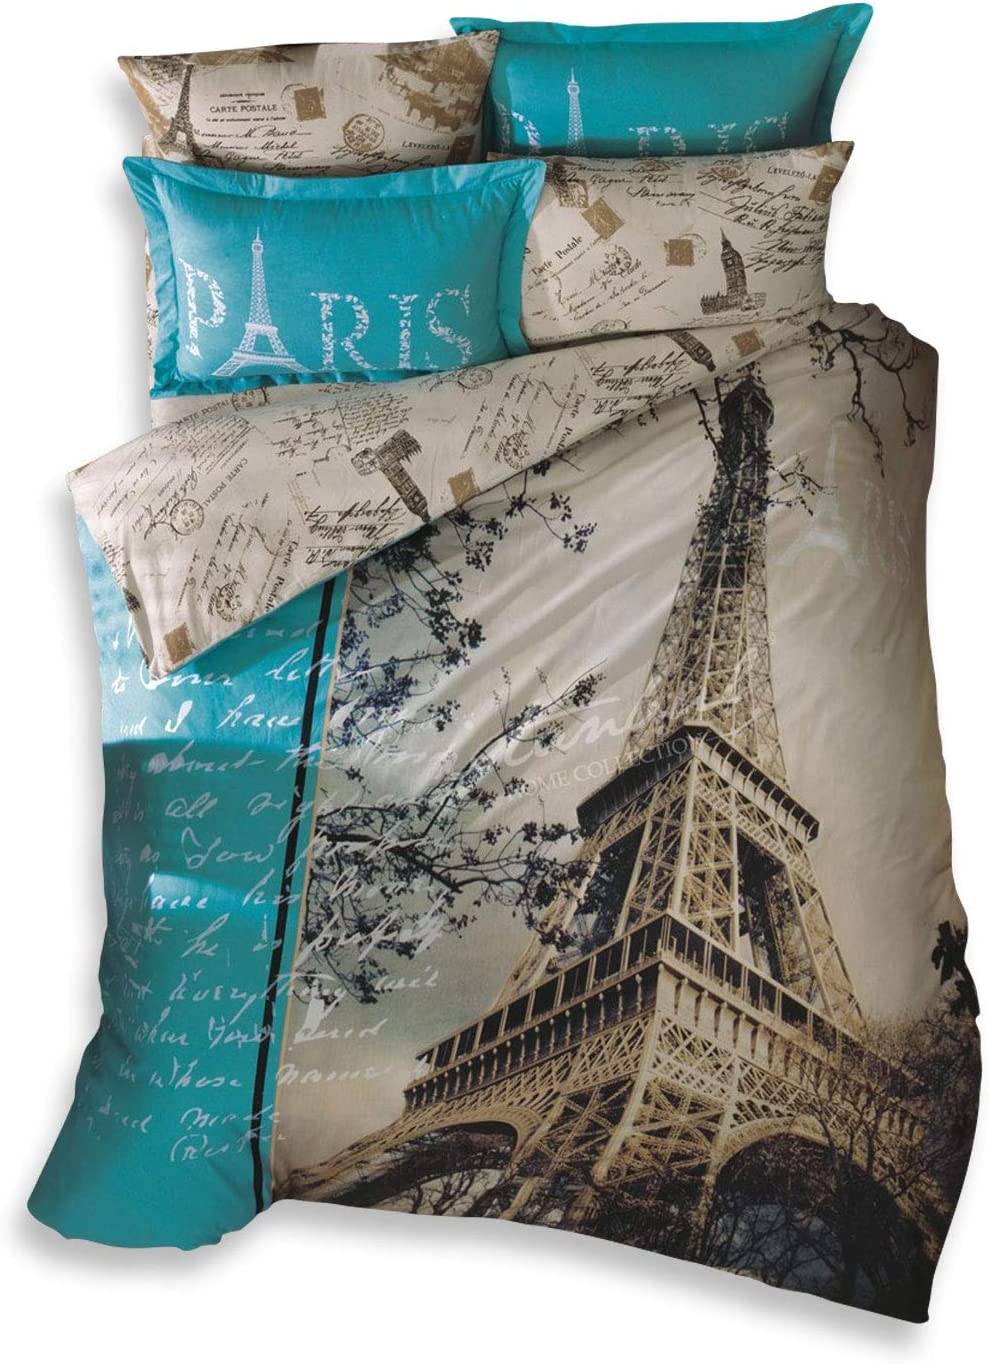 TAC 100% Turkish Cotton 4 Pcs!! Paris Eiffel Tower Theme Themed Full Double Queen Size Quilt Duvet Cover Set Bedding Made in Turkey